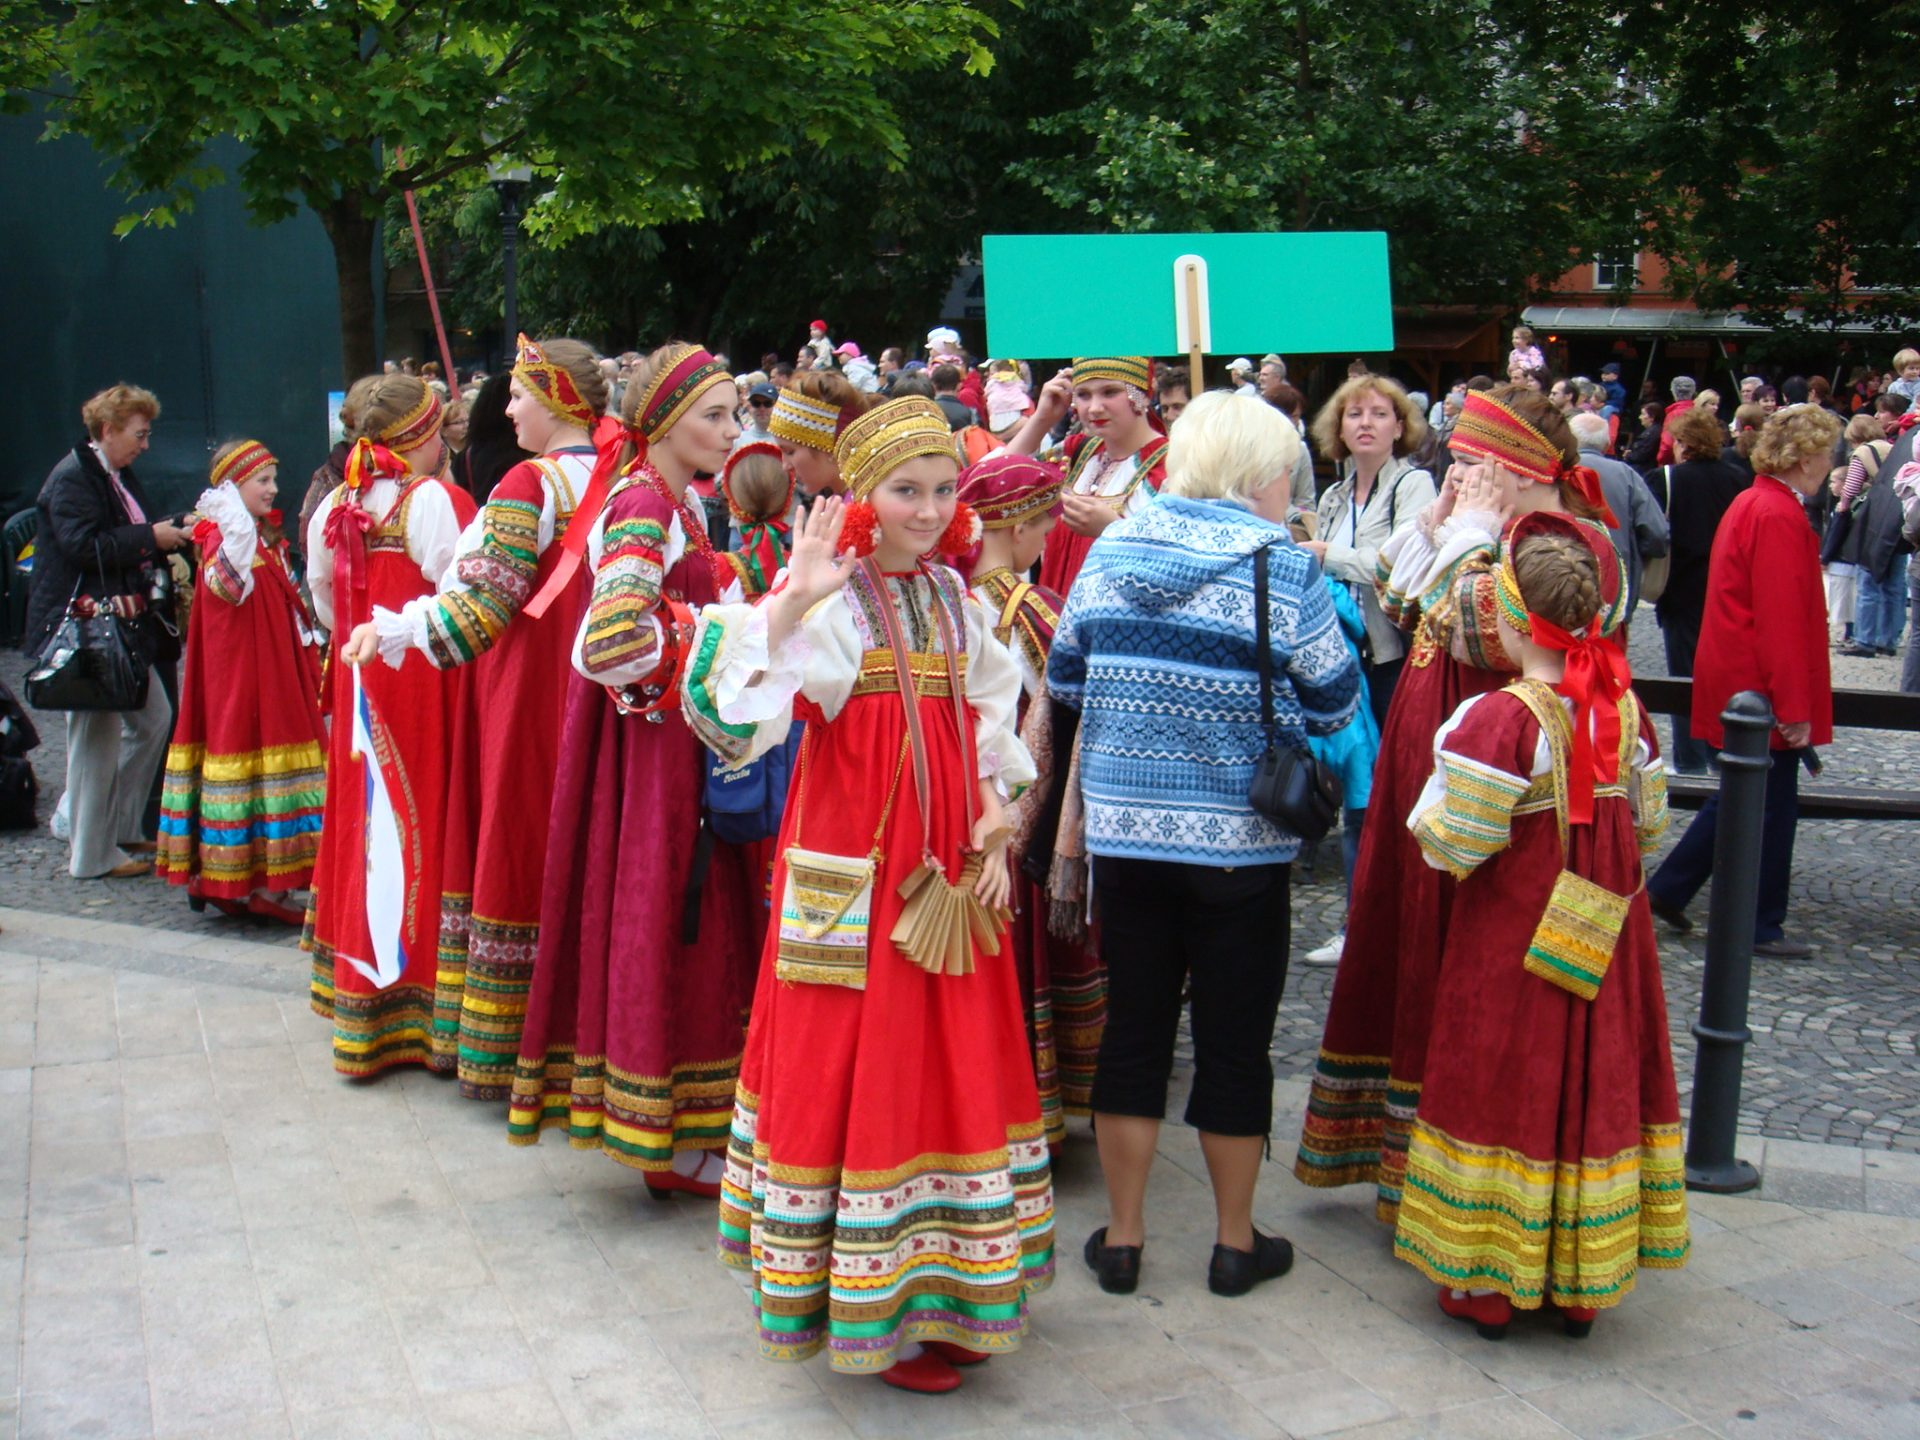 The dance troupe from Moscow pauses before their performance